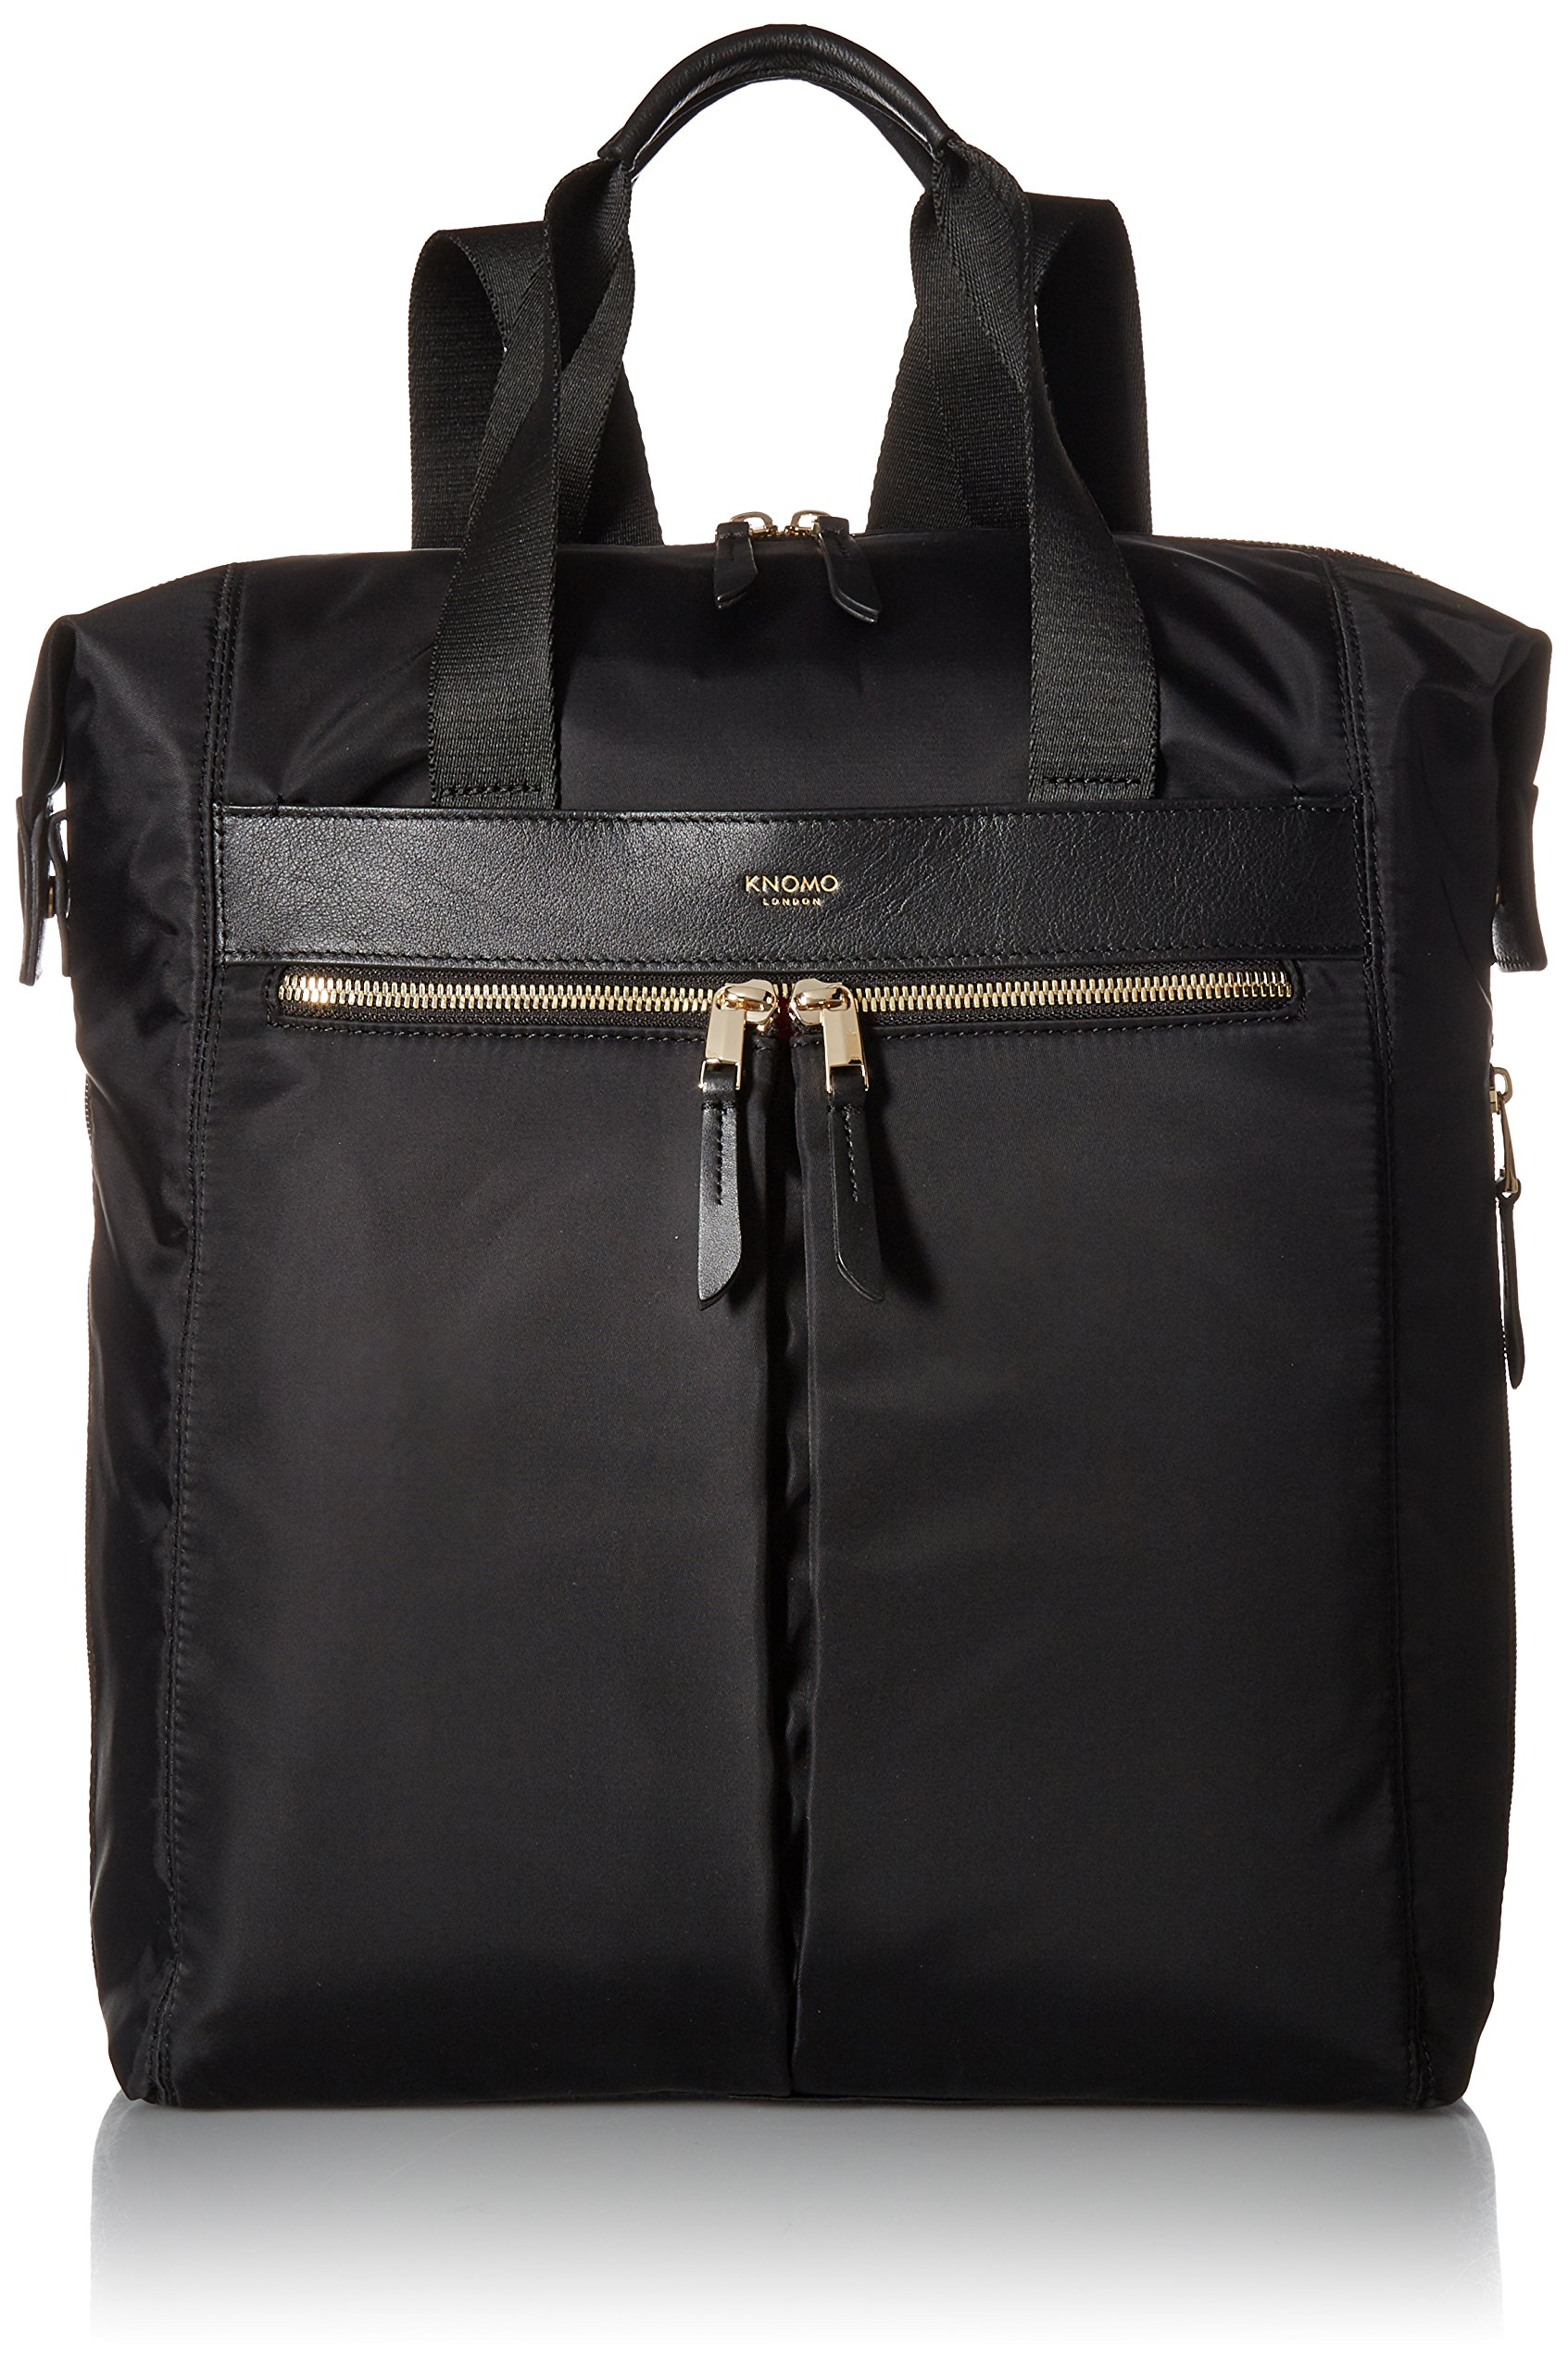 Knomo Luggage Women's Chiltern Business Backpack, Black, One Size by Knomo (Image #1)